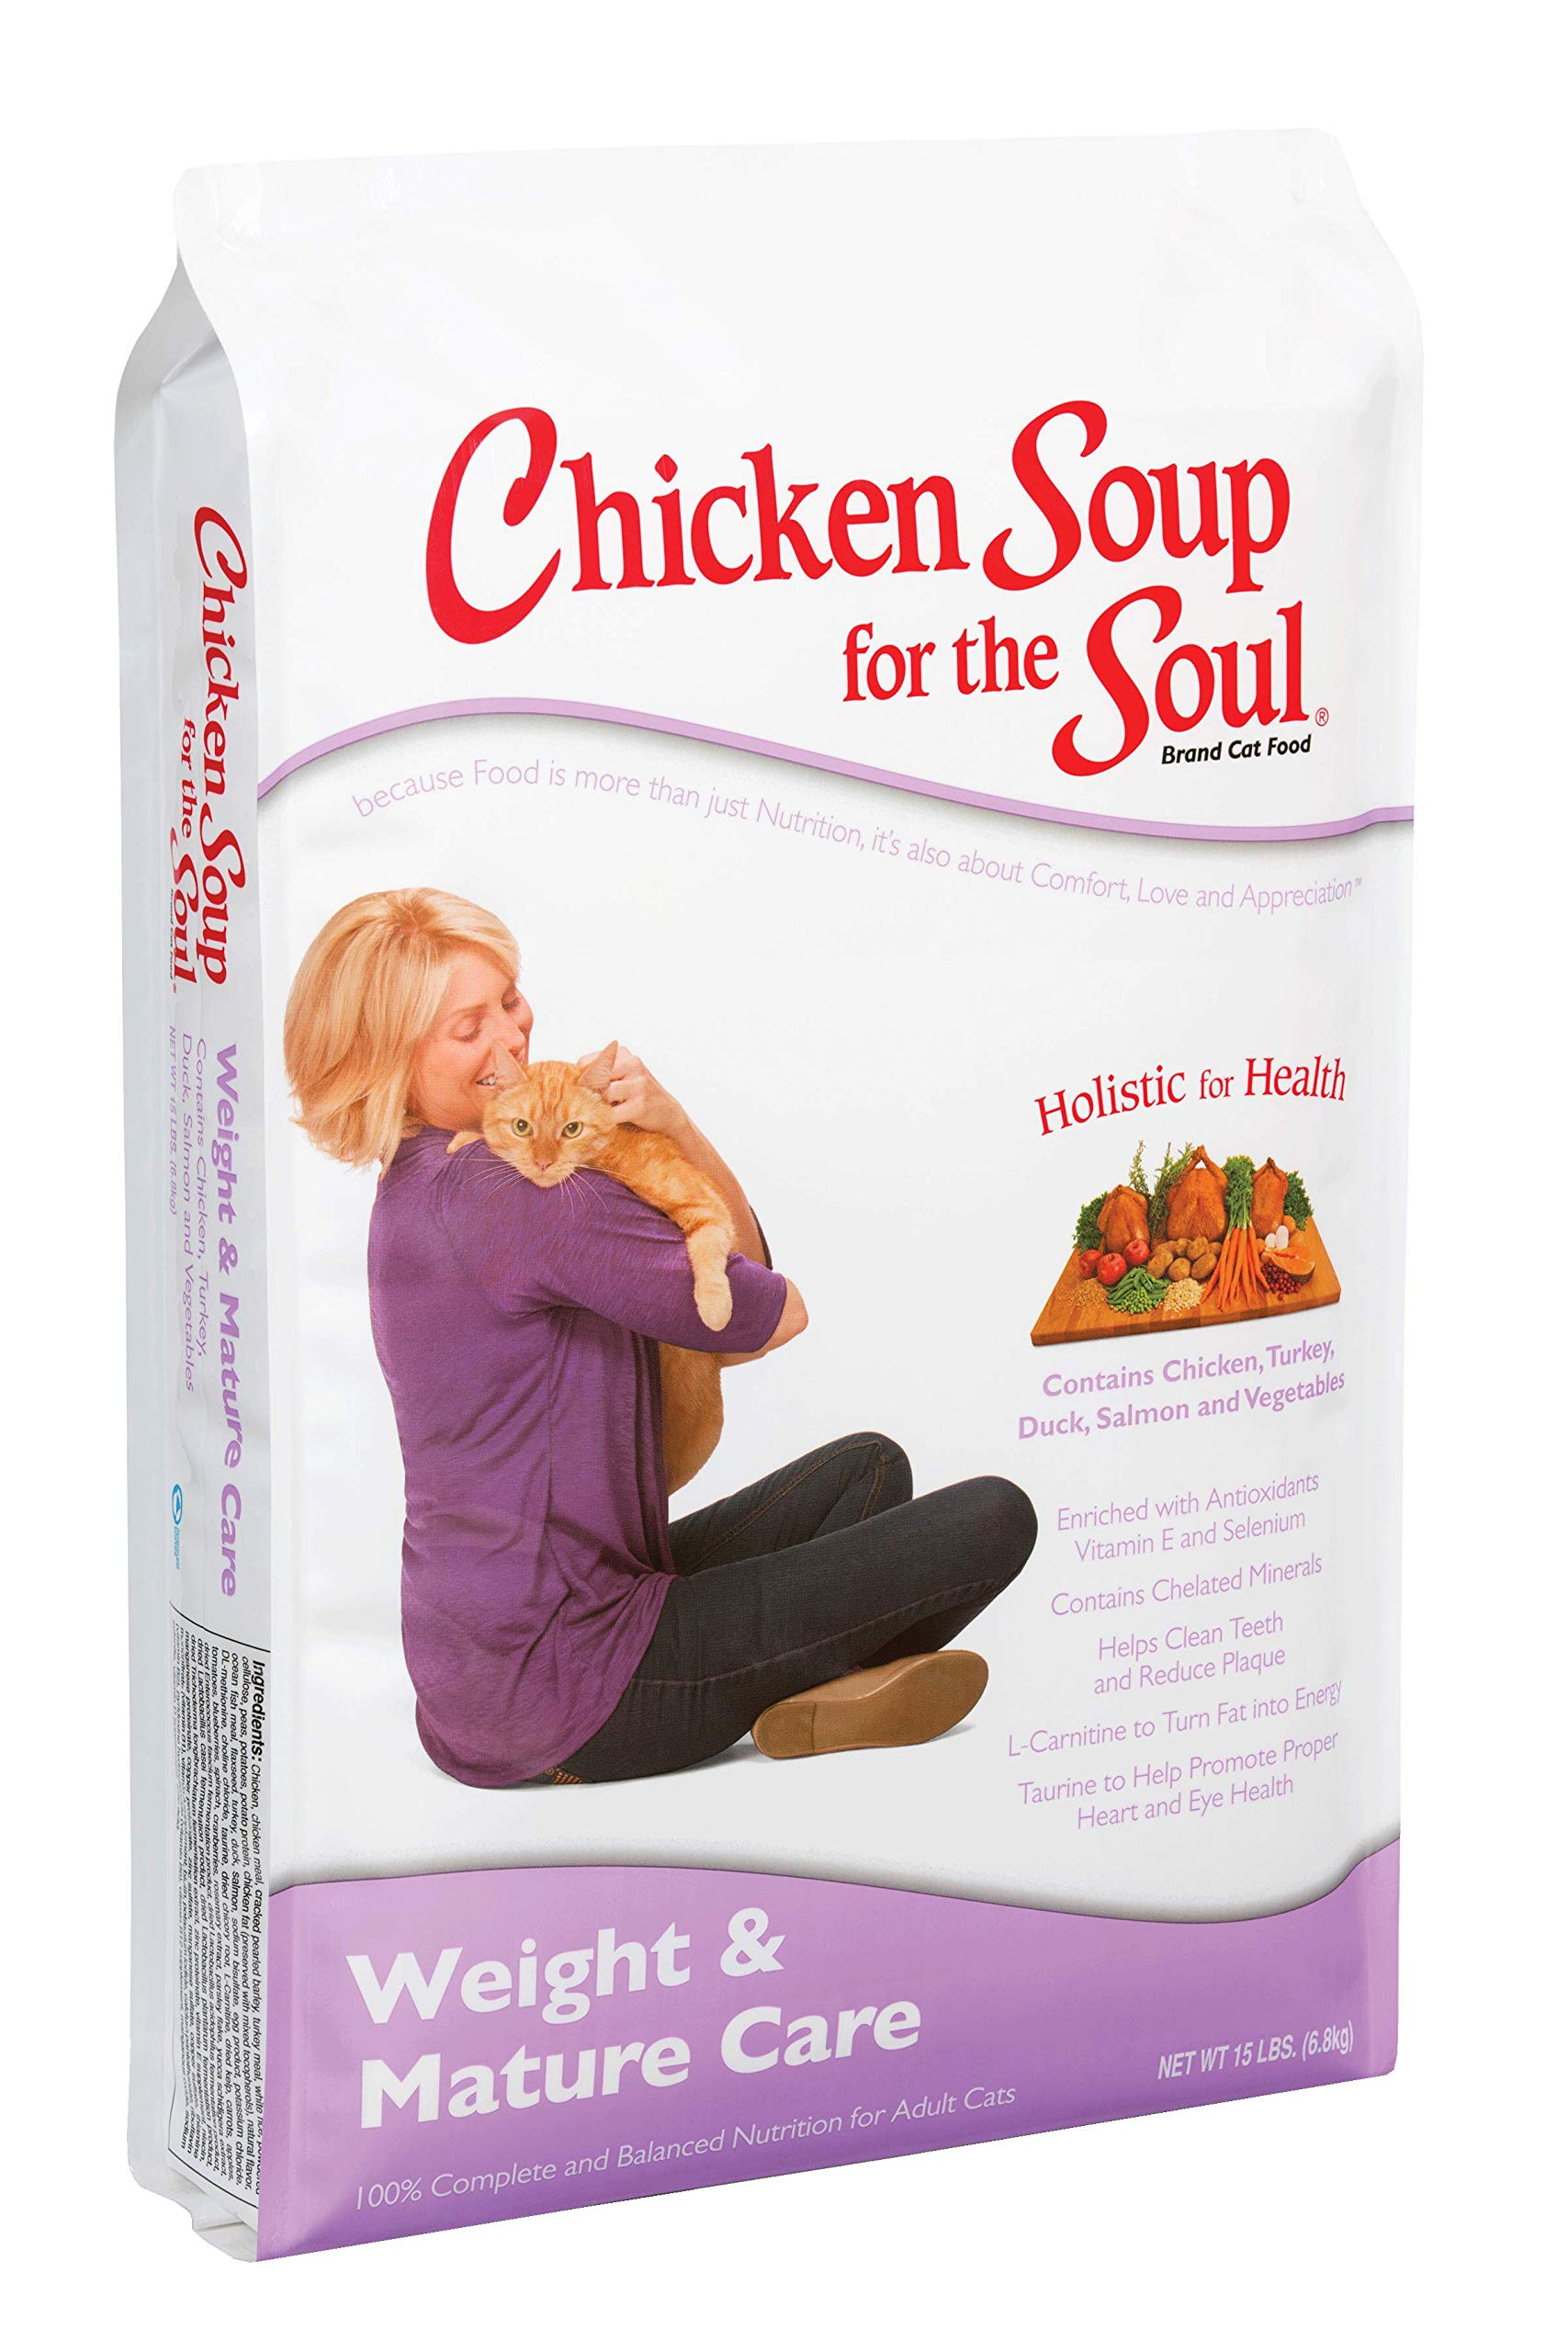 Chicken Soup for the Soul Weight & Mature Care Cat Food- Chicken & Brown Rice Recipe, Dry Cat Food by Chicken Soup for the Soul